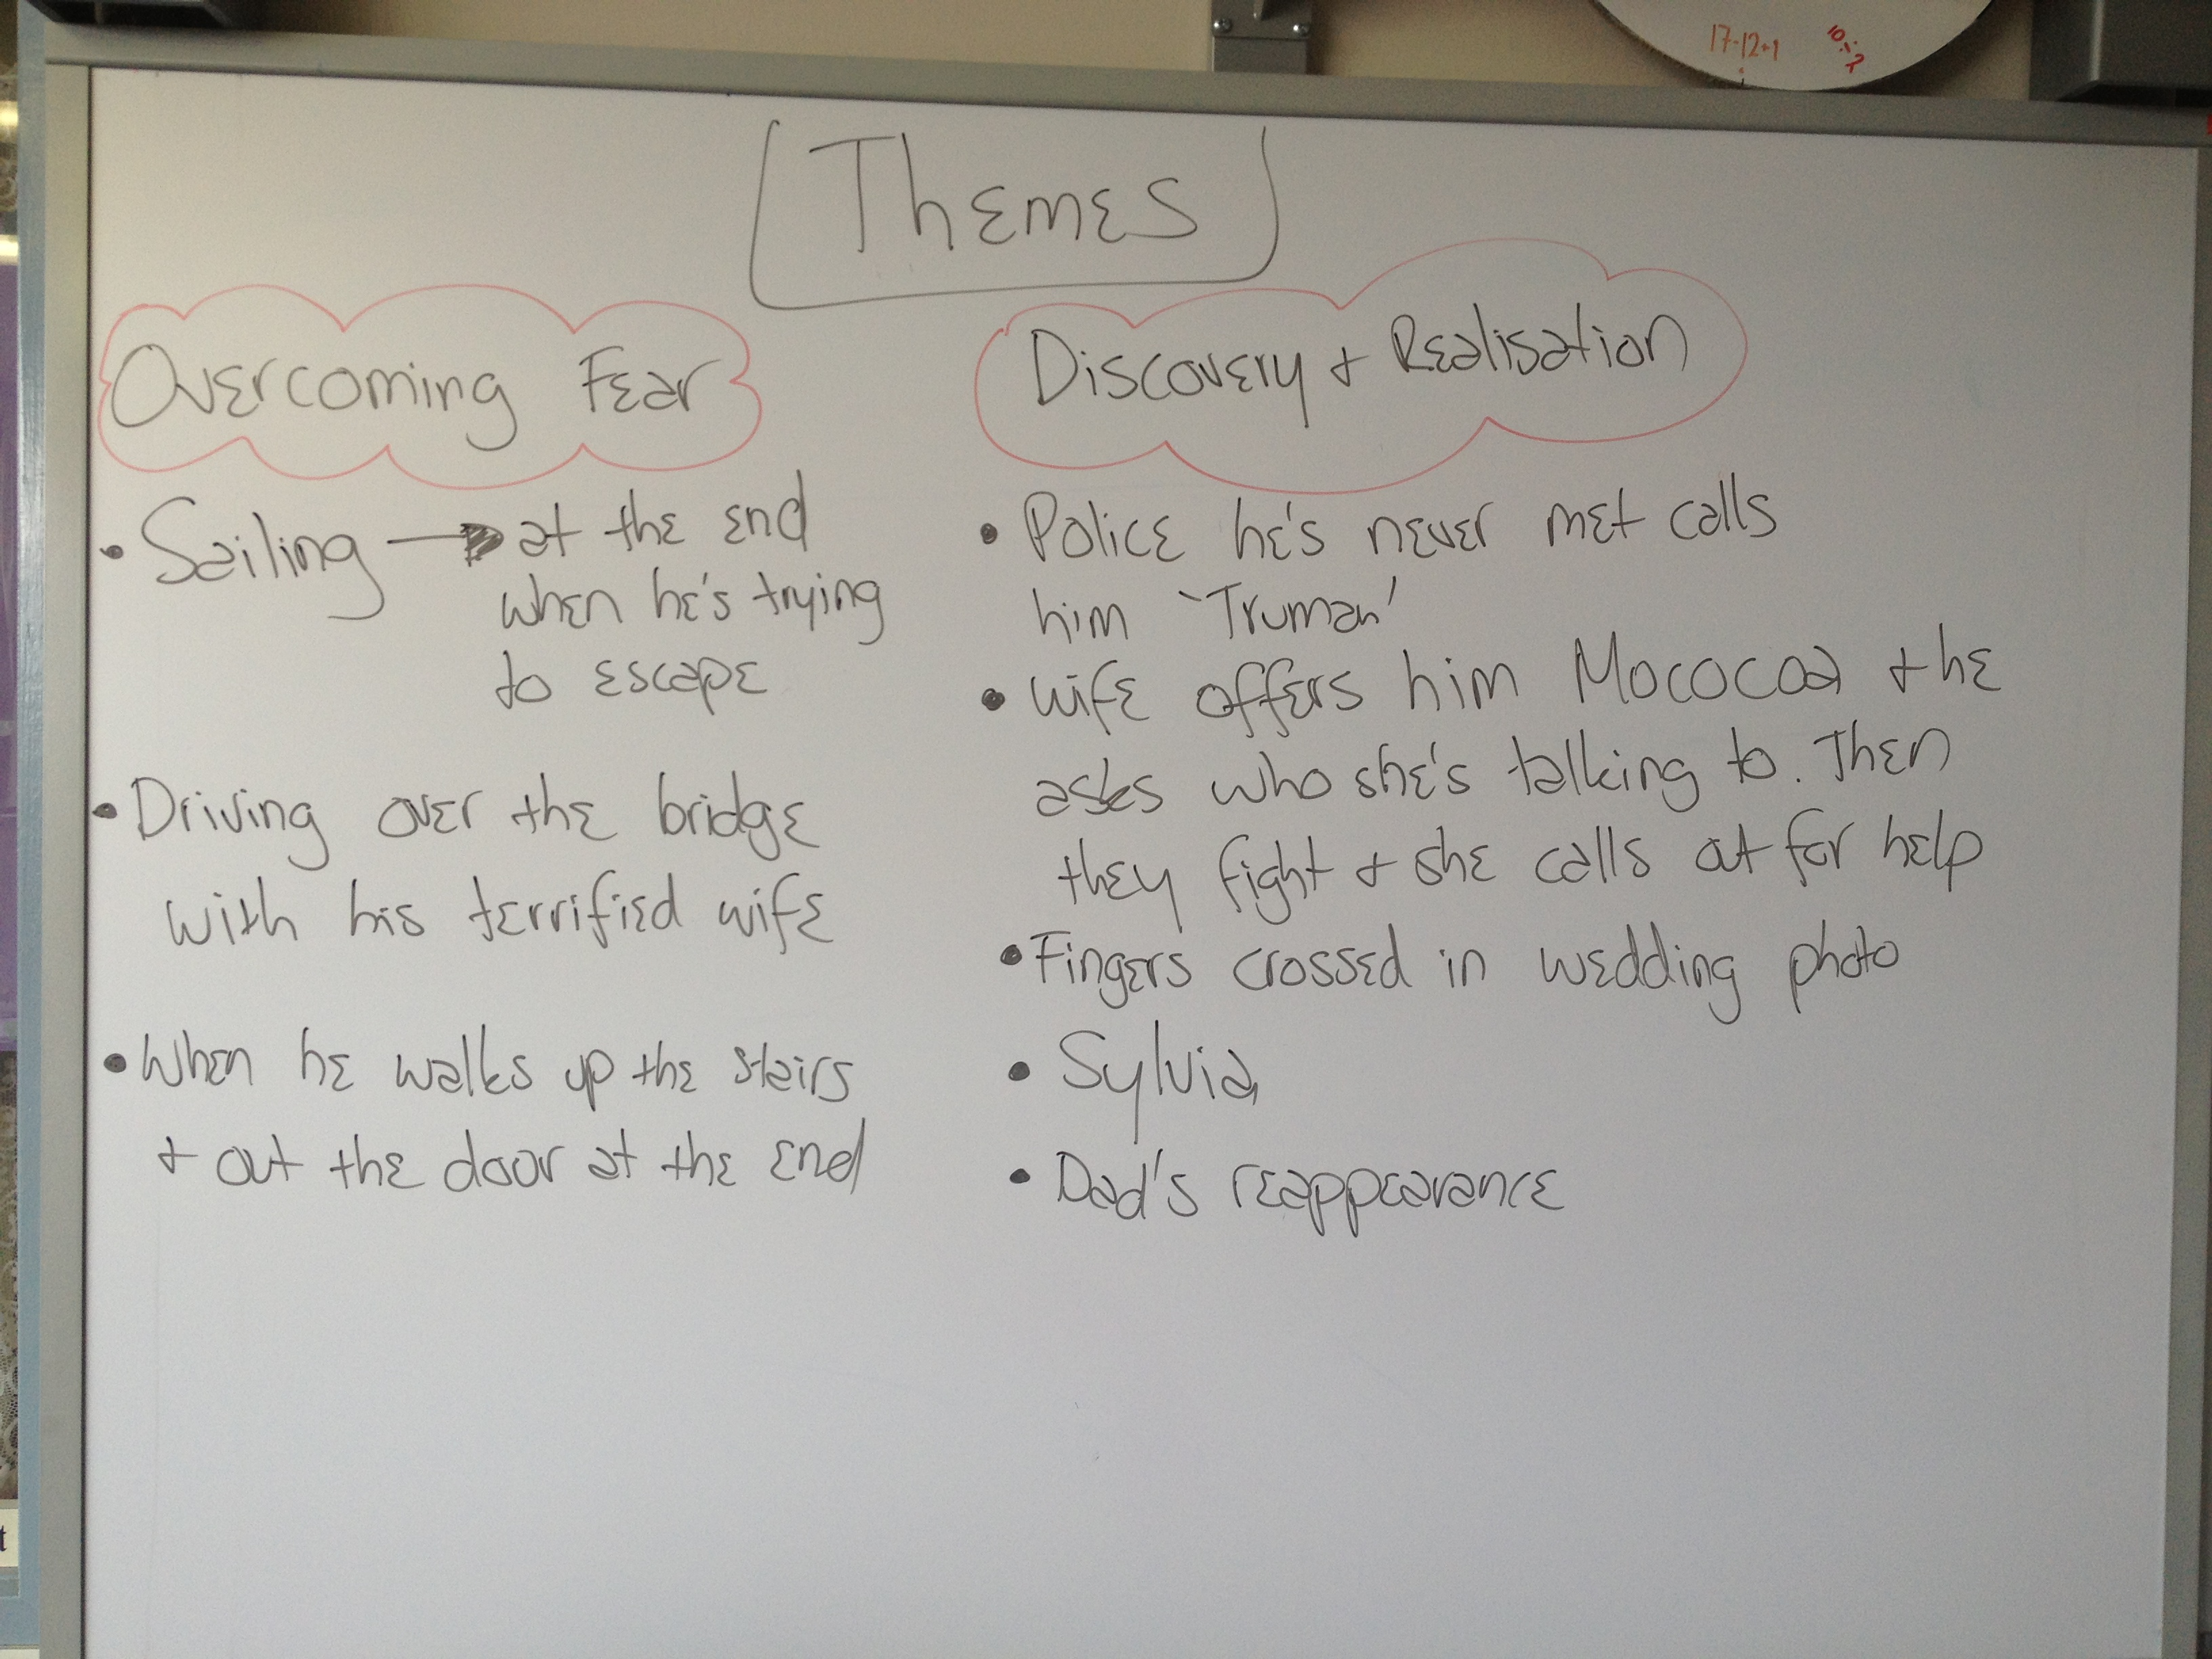 the truman show themes english here is the stuff we did on the board the other day to do the themes in the truman show